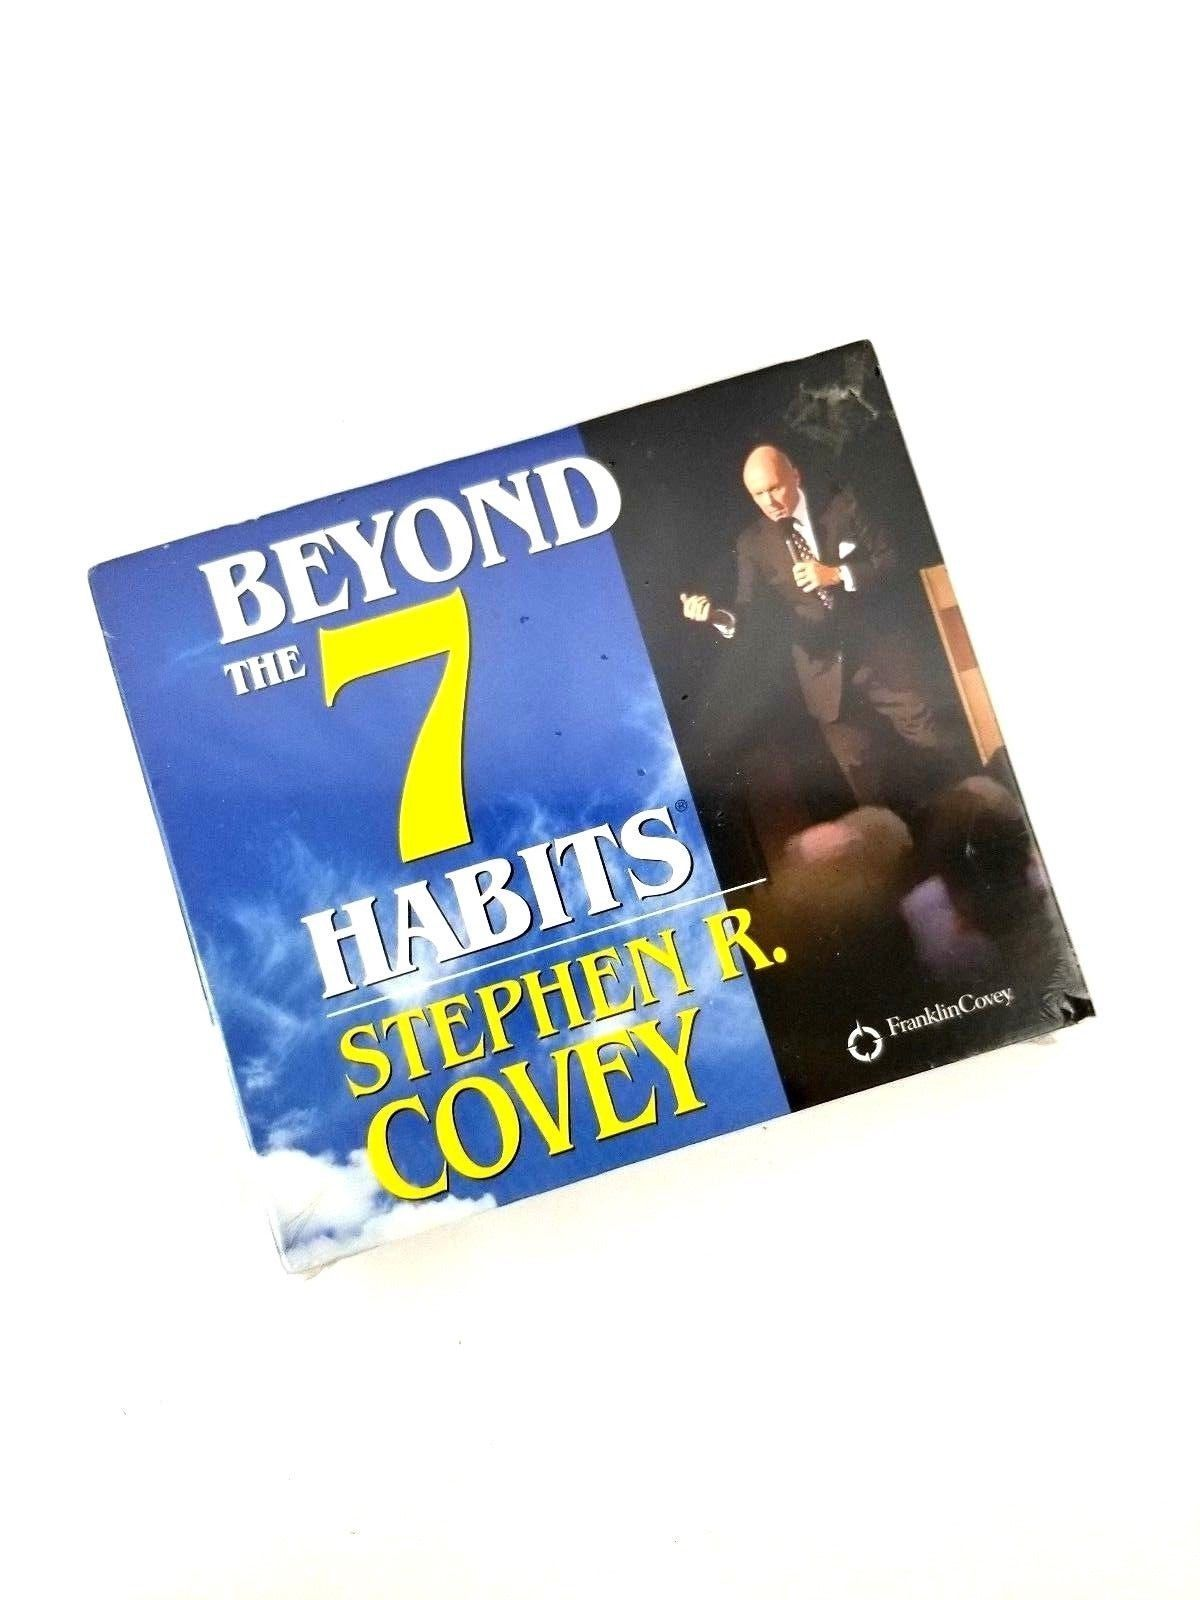 Franklin Covey: Beyond the 7 Habits 4 Audio CDs by Stephen R. Covey New